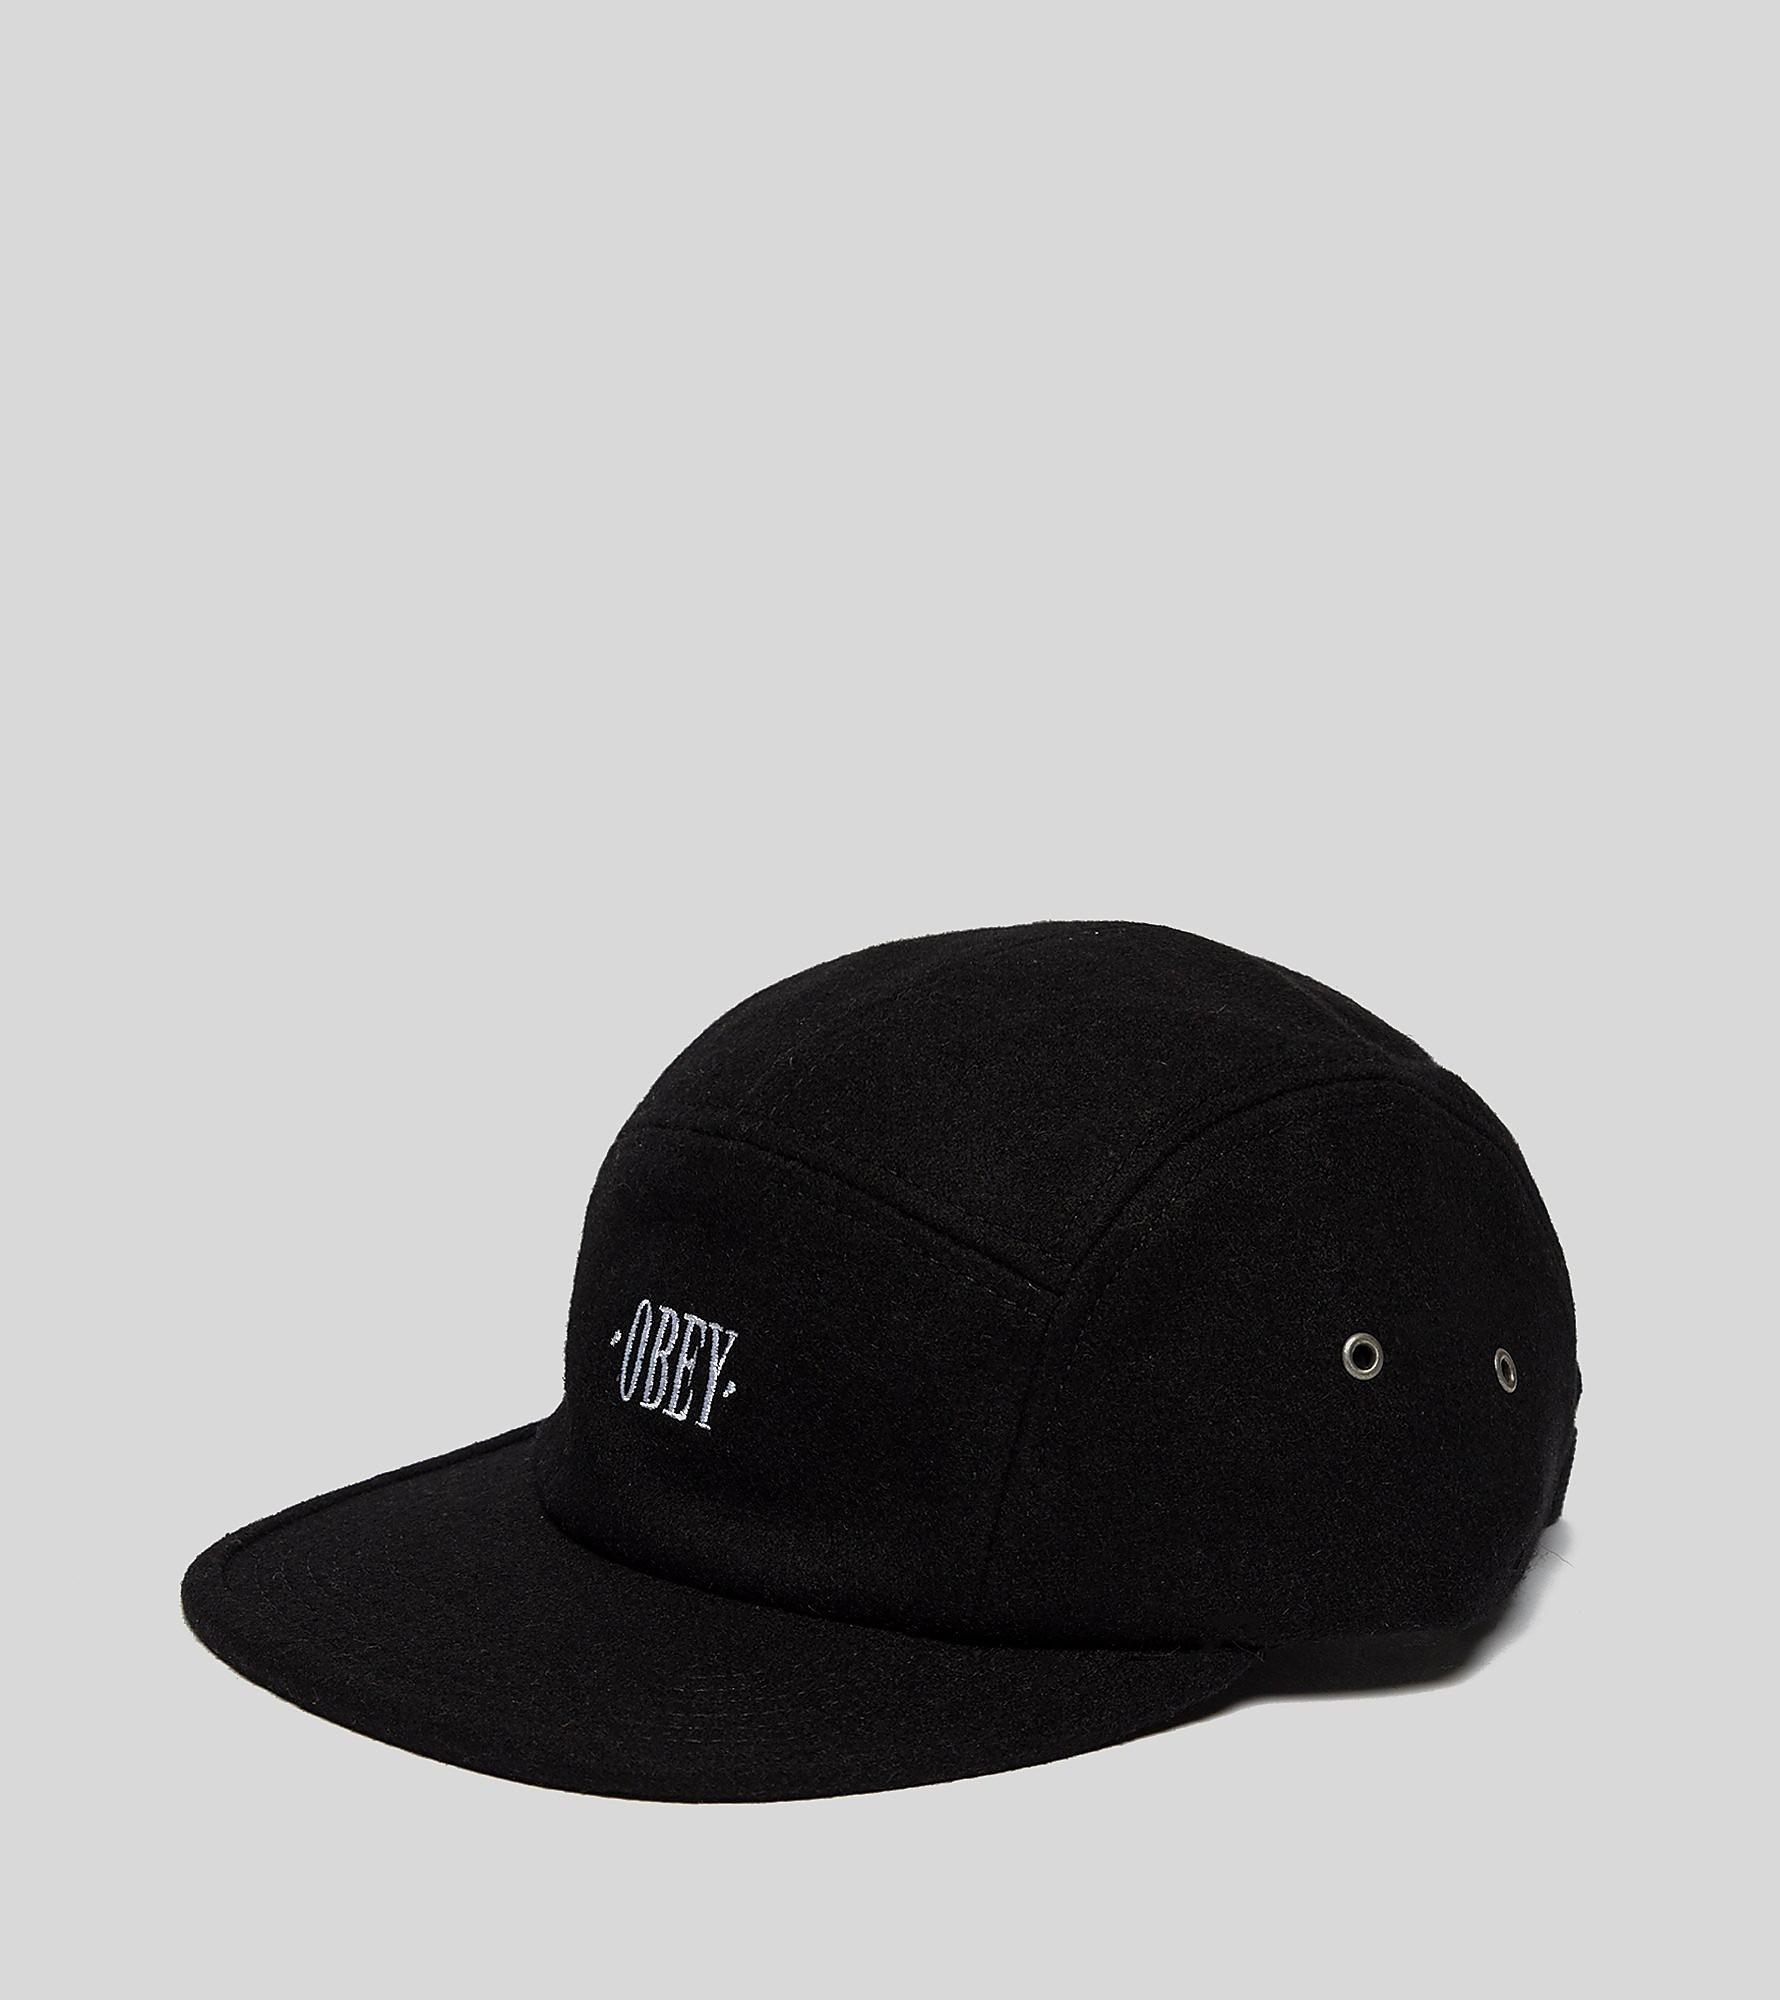 Obey Subtle 5 Panel Cap